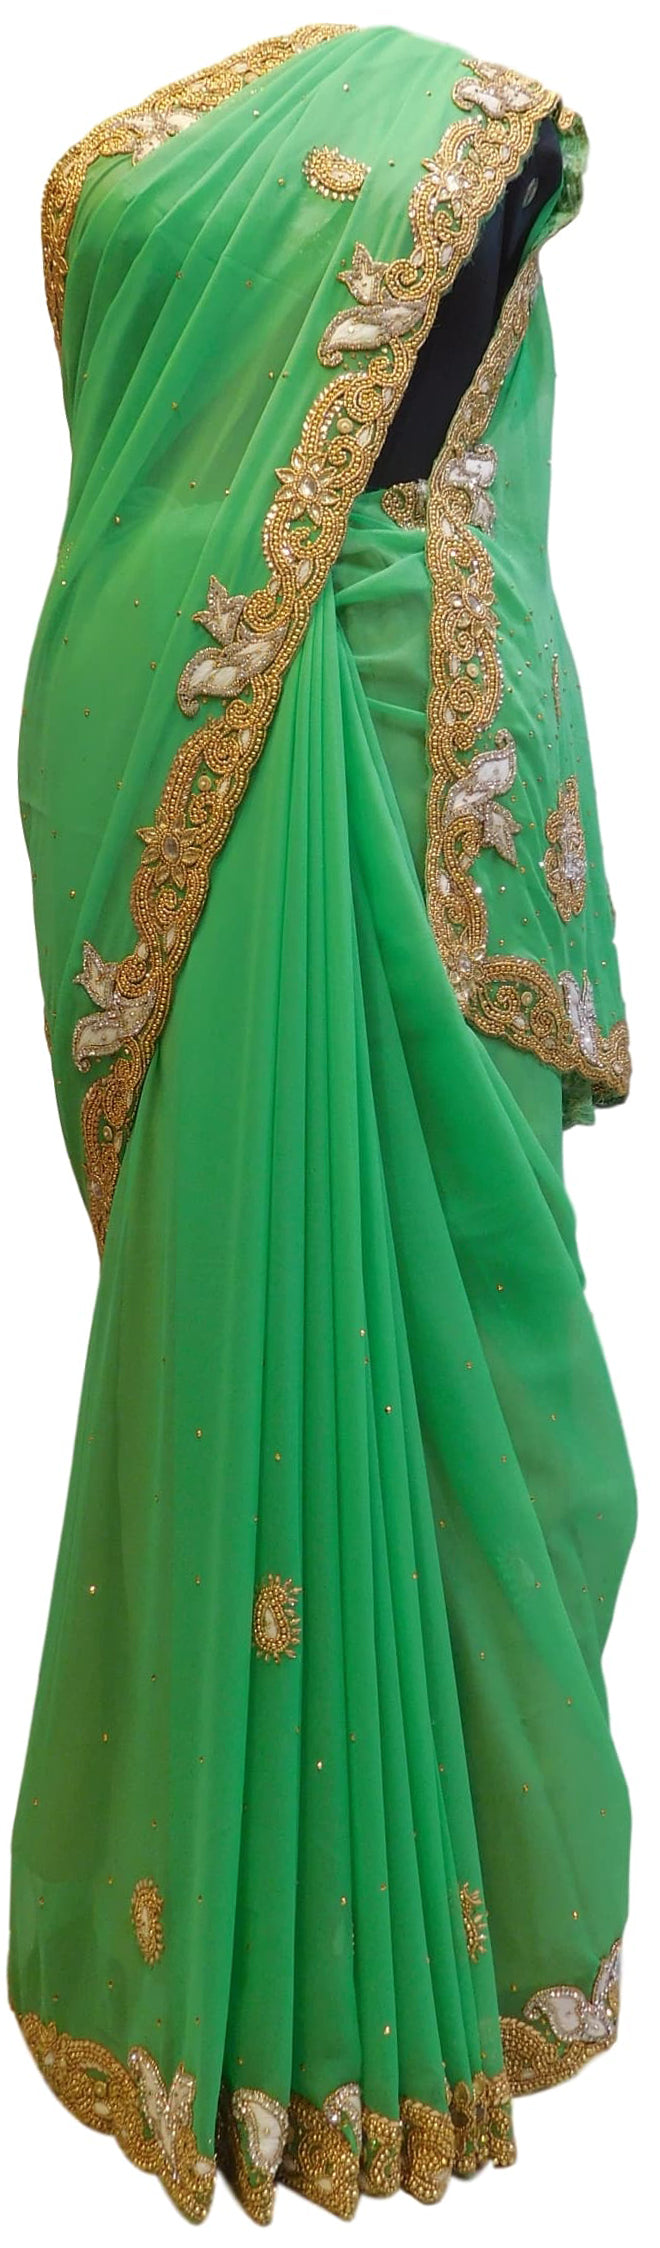 Green Designer Georgette Hand Embroidery Thread Stone Beads Work Saree Sari